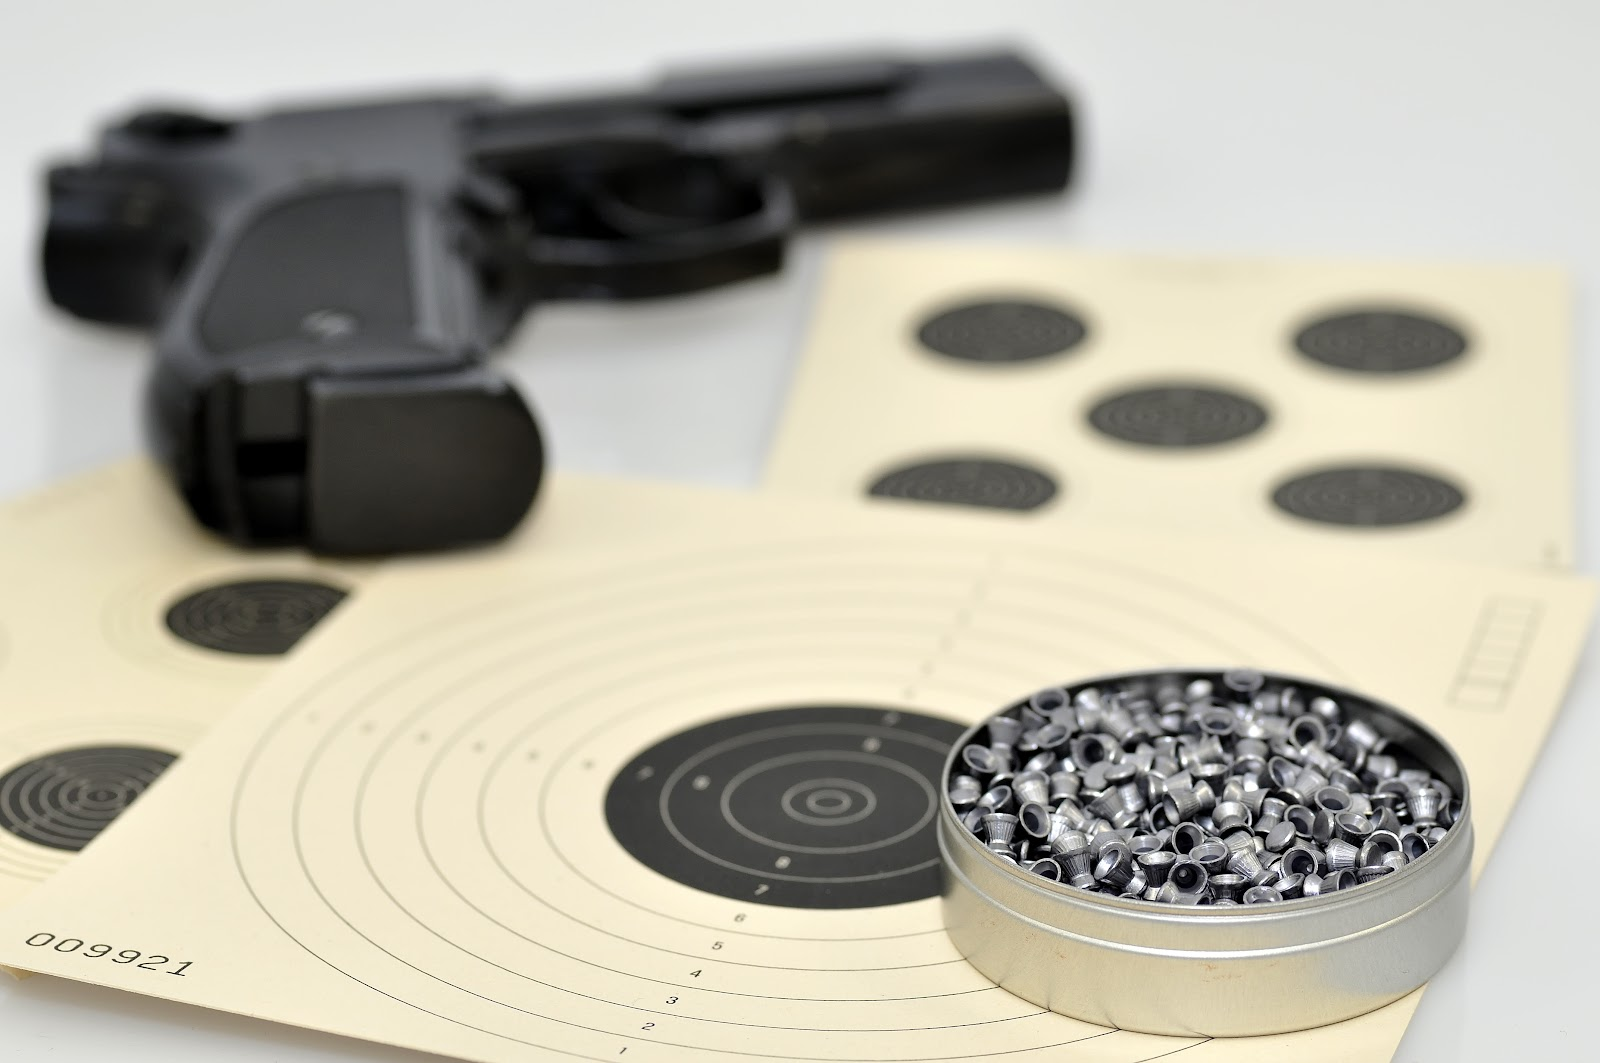 paper targets and a pistol